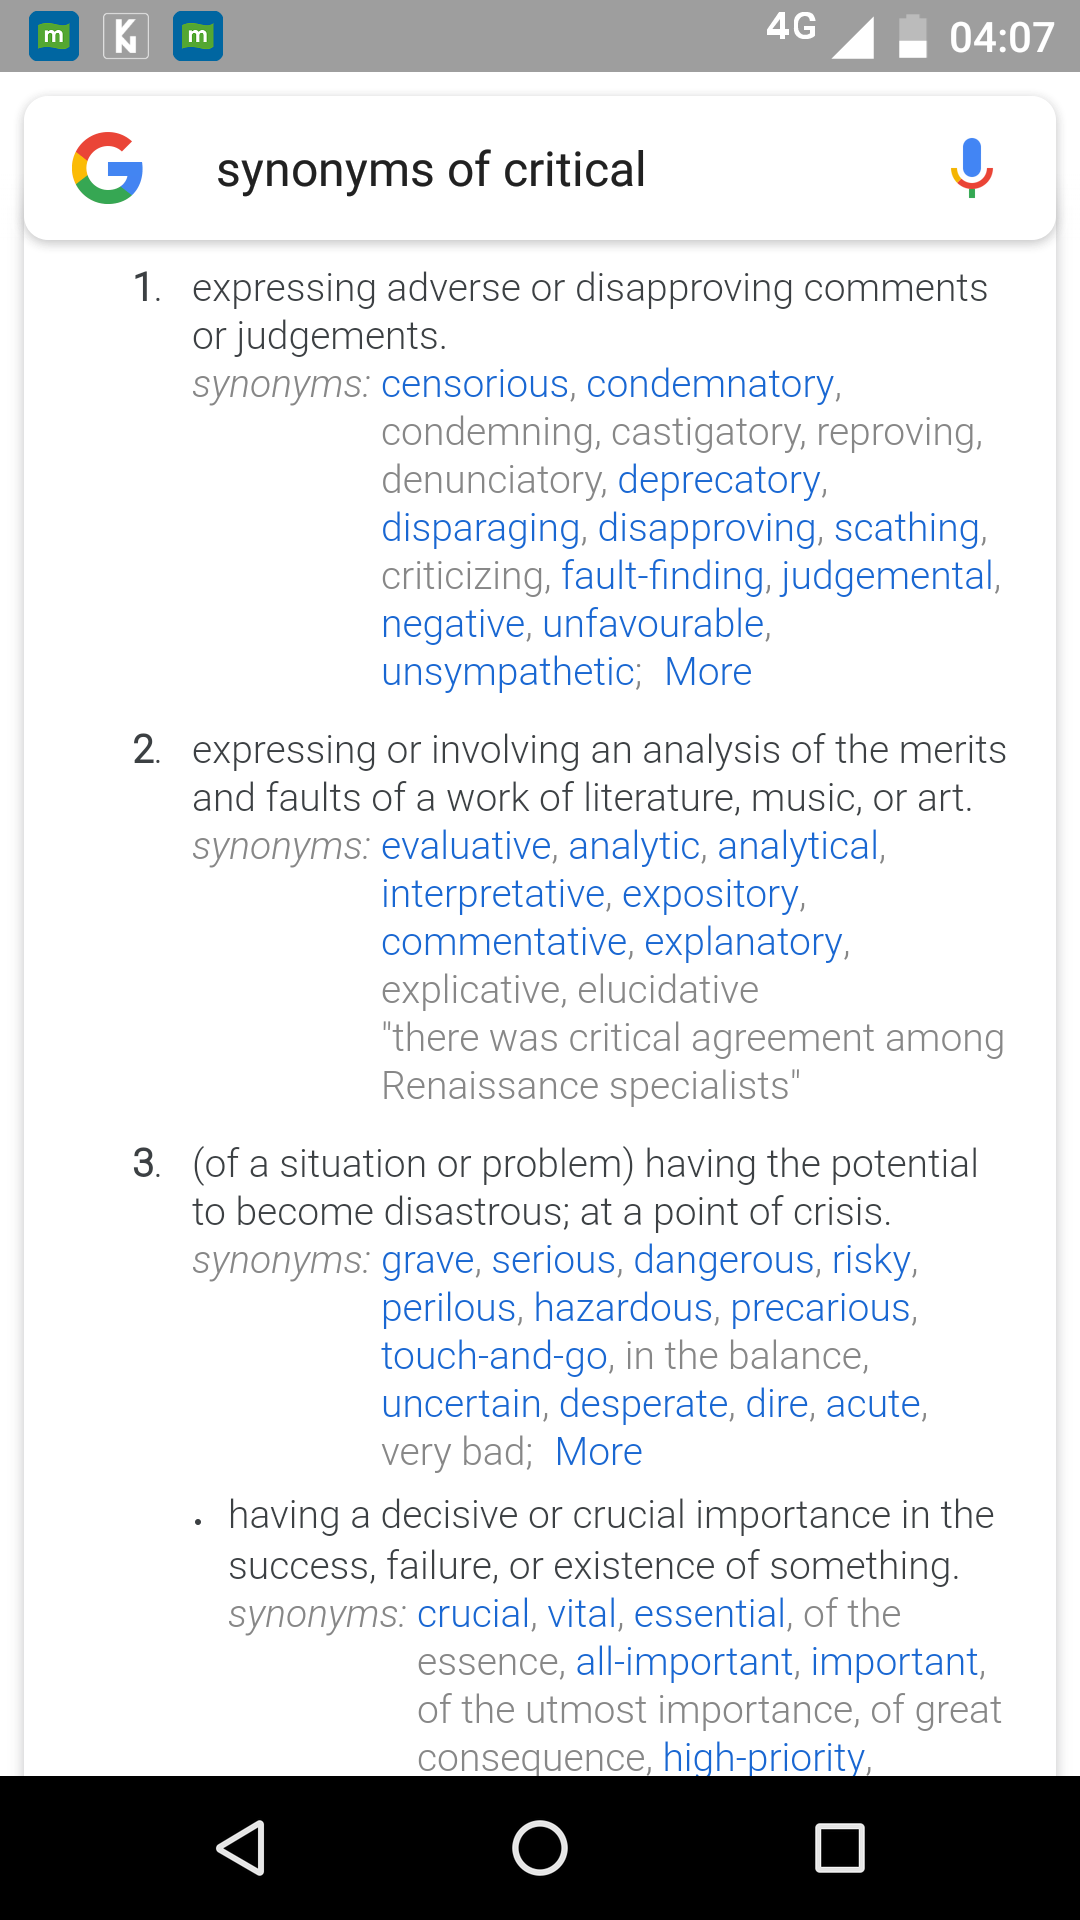 What are synonyms of being critical? - Quora